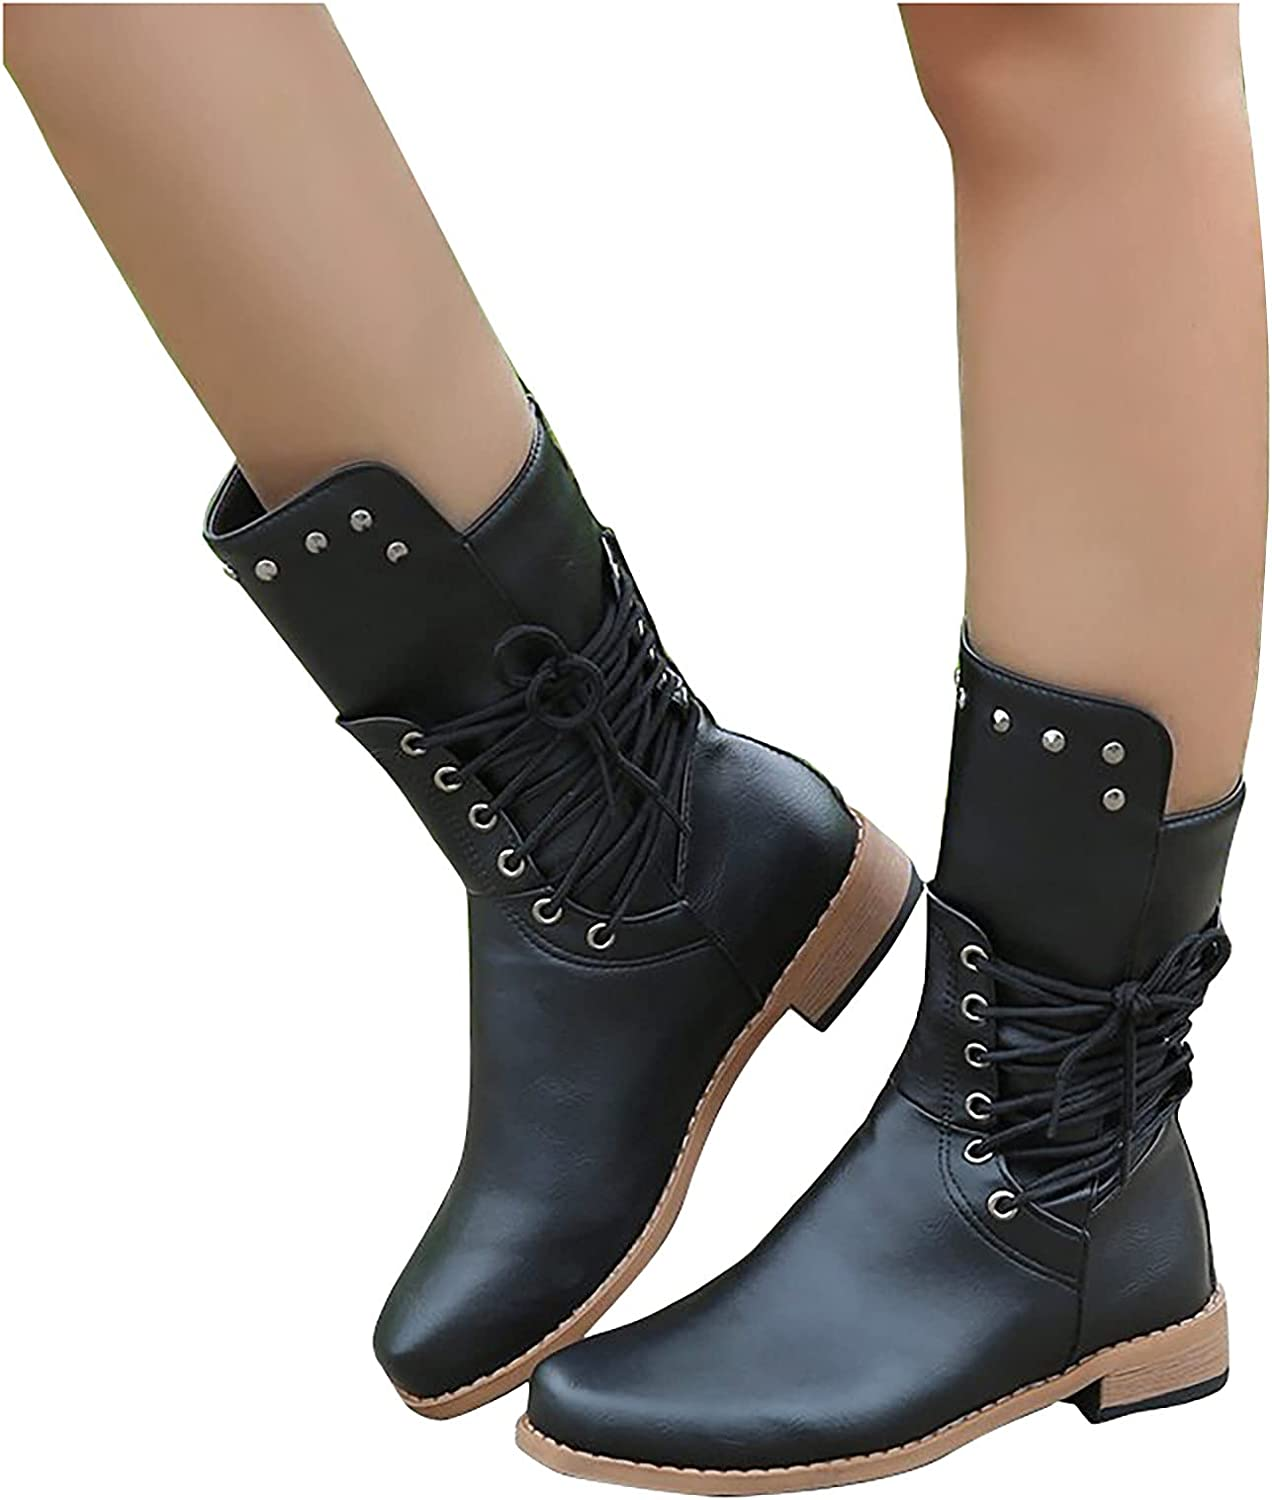 OrchidAmor Fall and Winter Ankle Boots for Women Fashion Leisure Medium Tube Plush Warm Zip Up Snow Boots Leather High-Top Round Toe Low-Heeled Snow Shoes